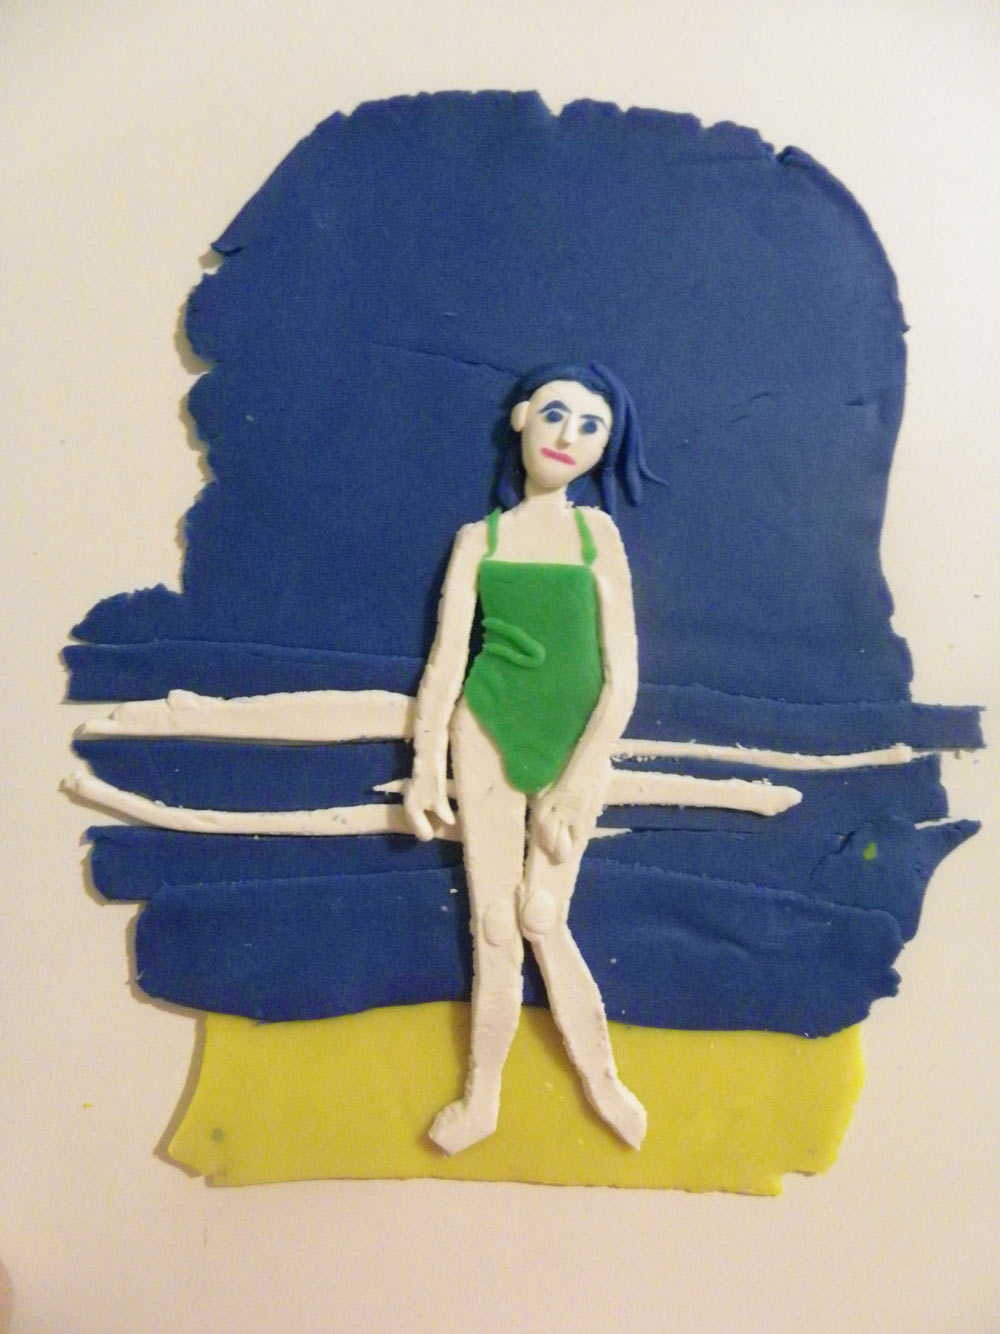 Photographs Rendered in Play-Doh: dijkstra1.jpg